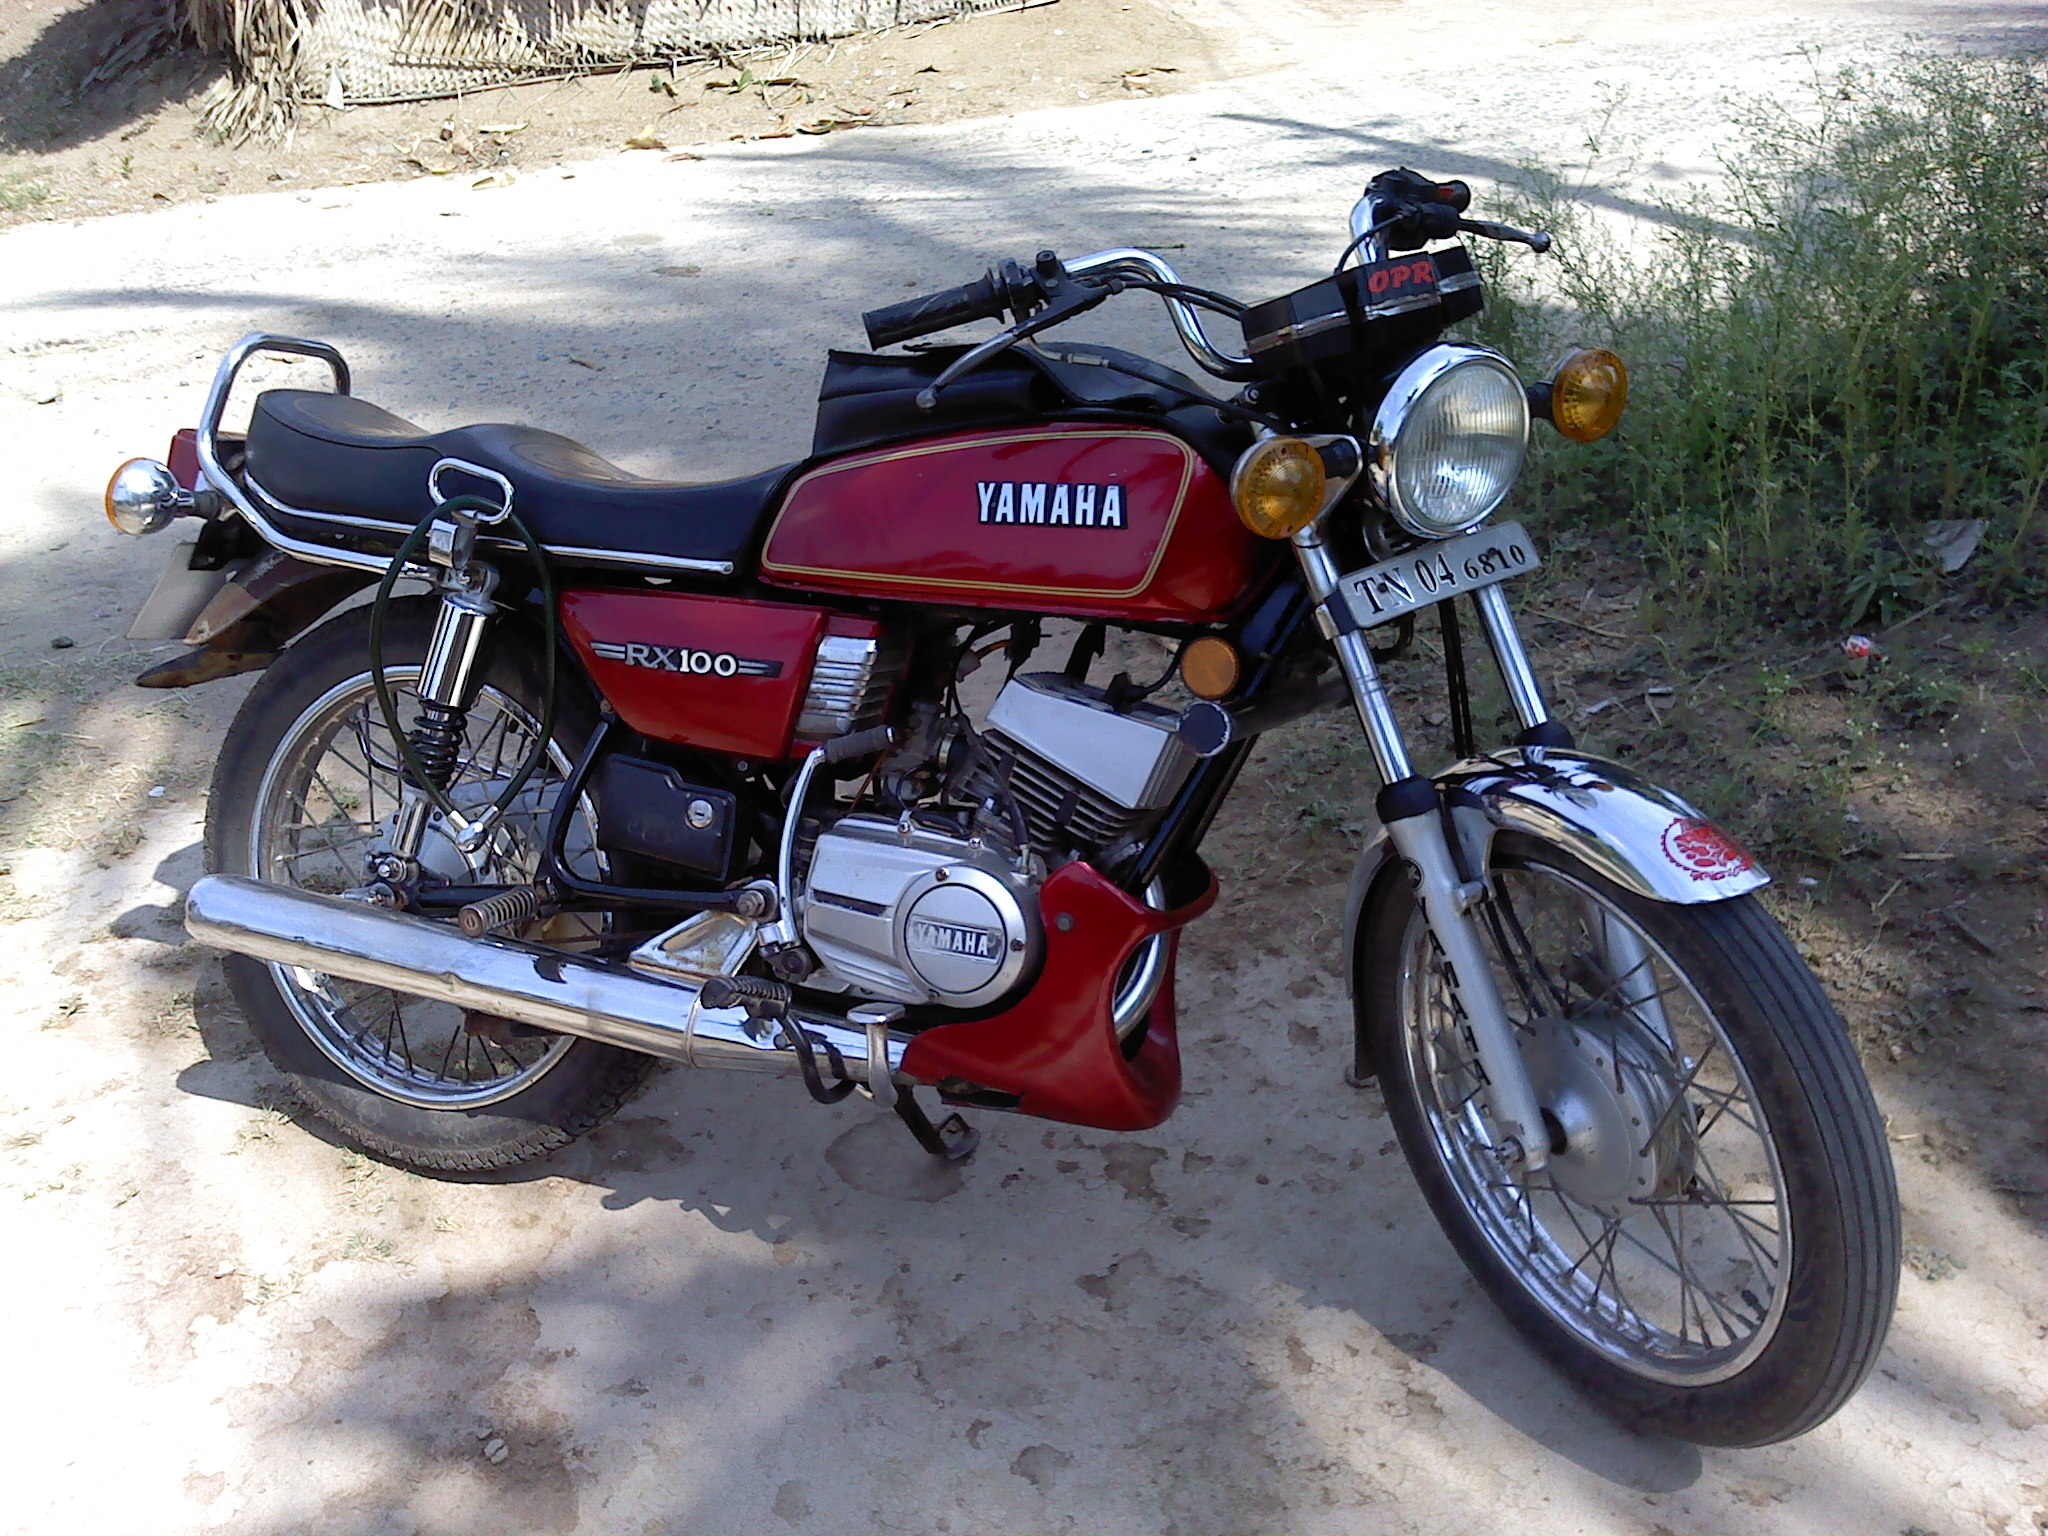 YAMAHA RX100 Photos, Images And Wallpapers